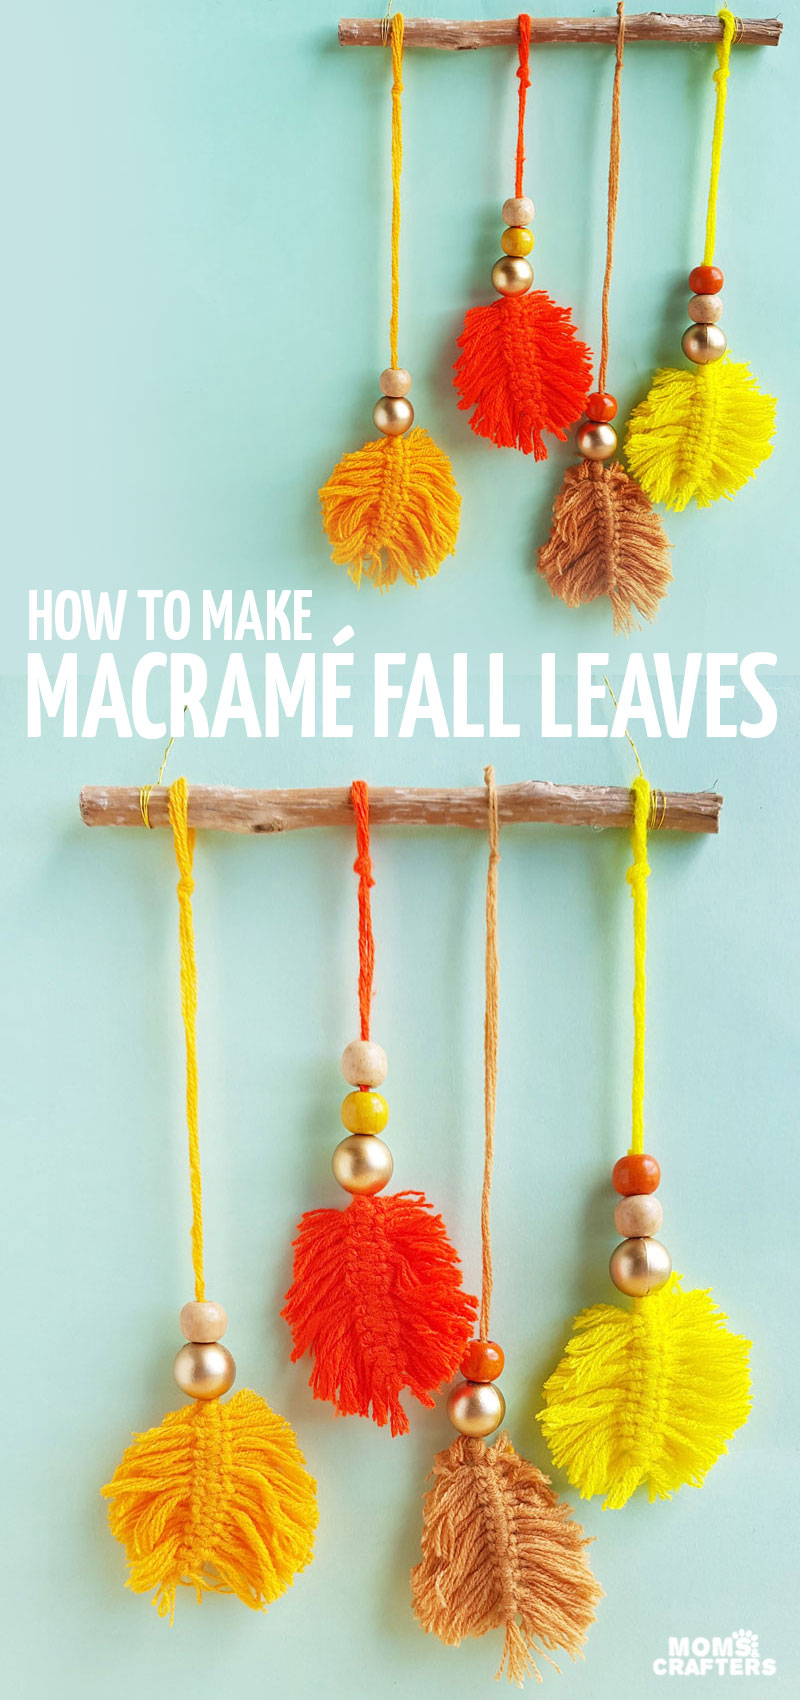 Learn how to make macrame fall leaves using just a few simple steps, and then turn it into stunning fall DIY decor! This gorgeous DIY easy macrame wall hanging tutorial for beginners will bring autumn hygge into your home